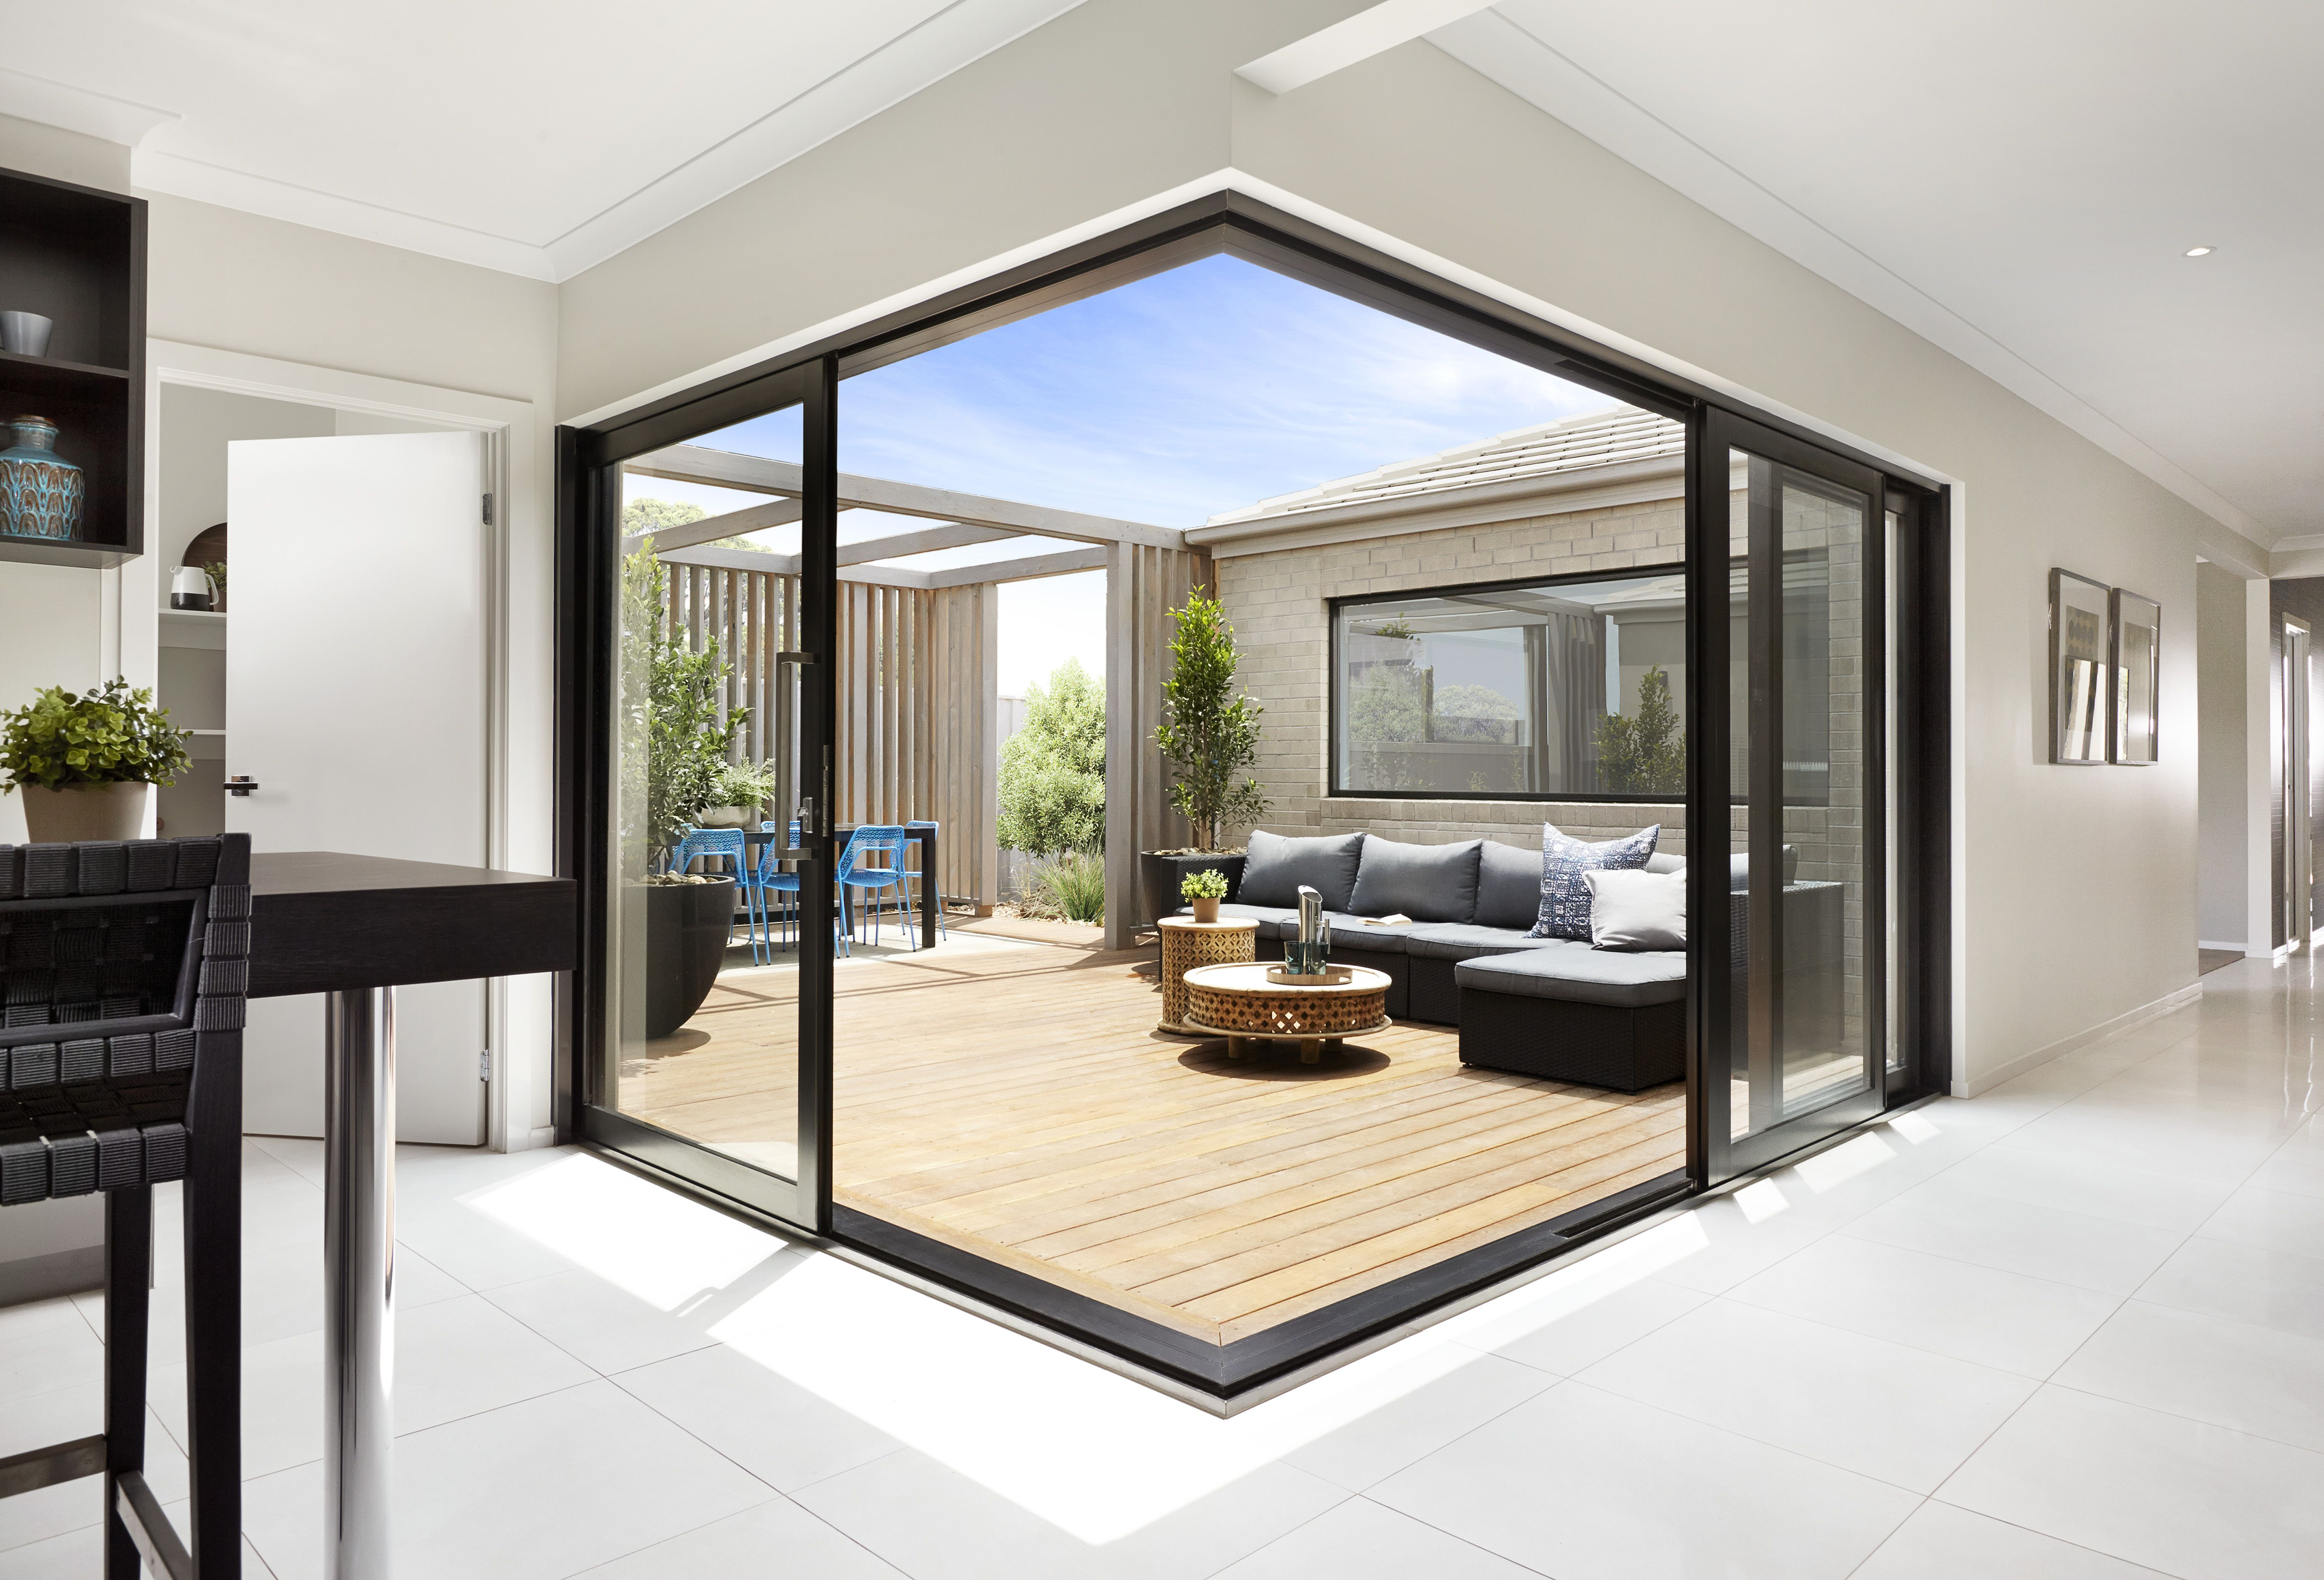 Striking Corner Sliding Doors To An Alfresco Area A Amp L